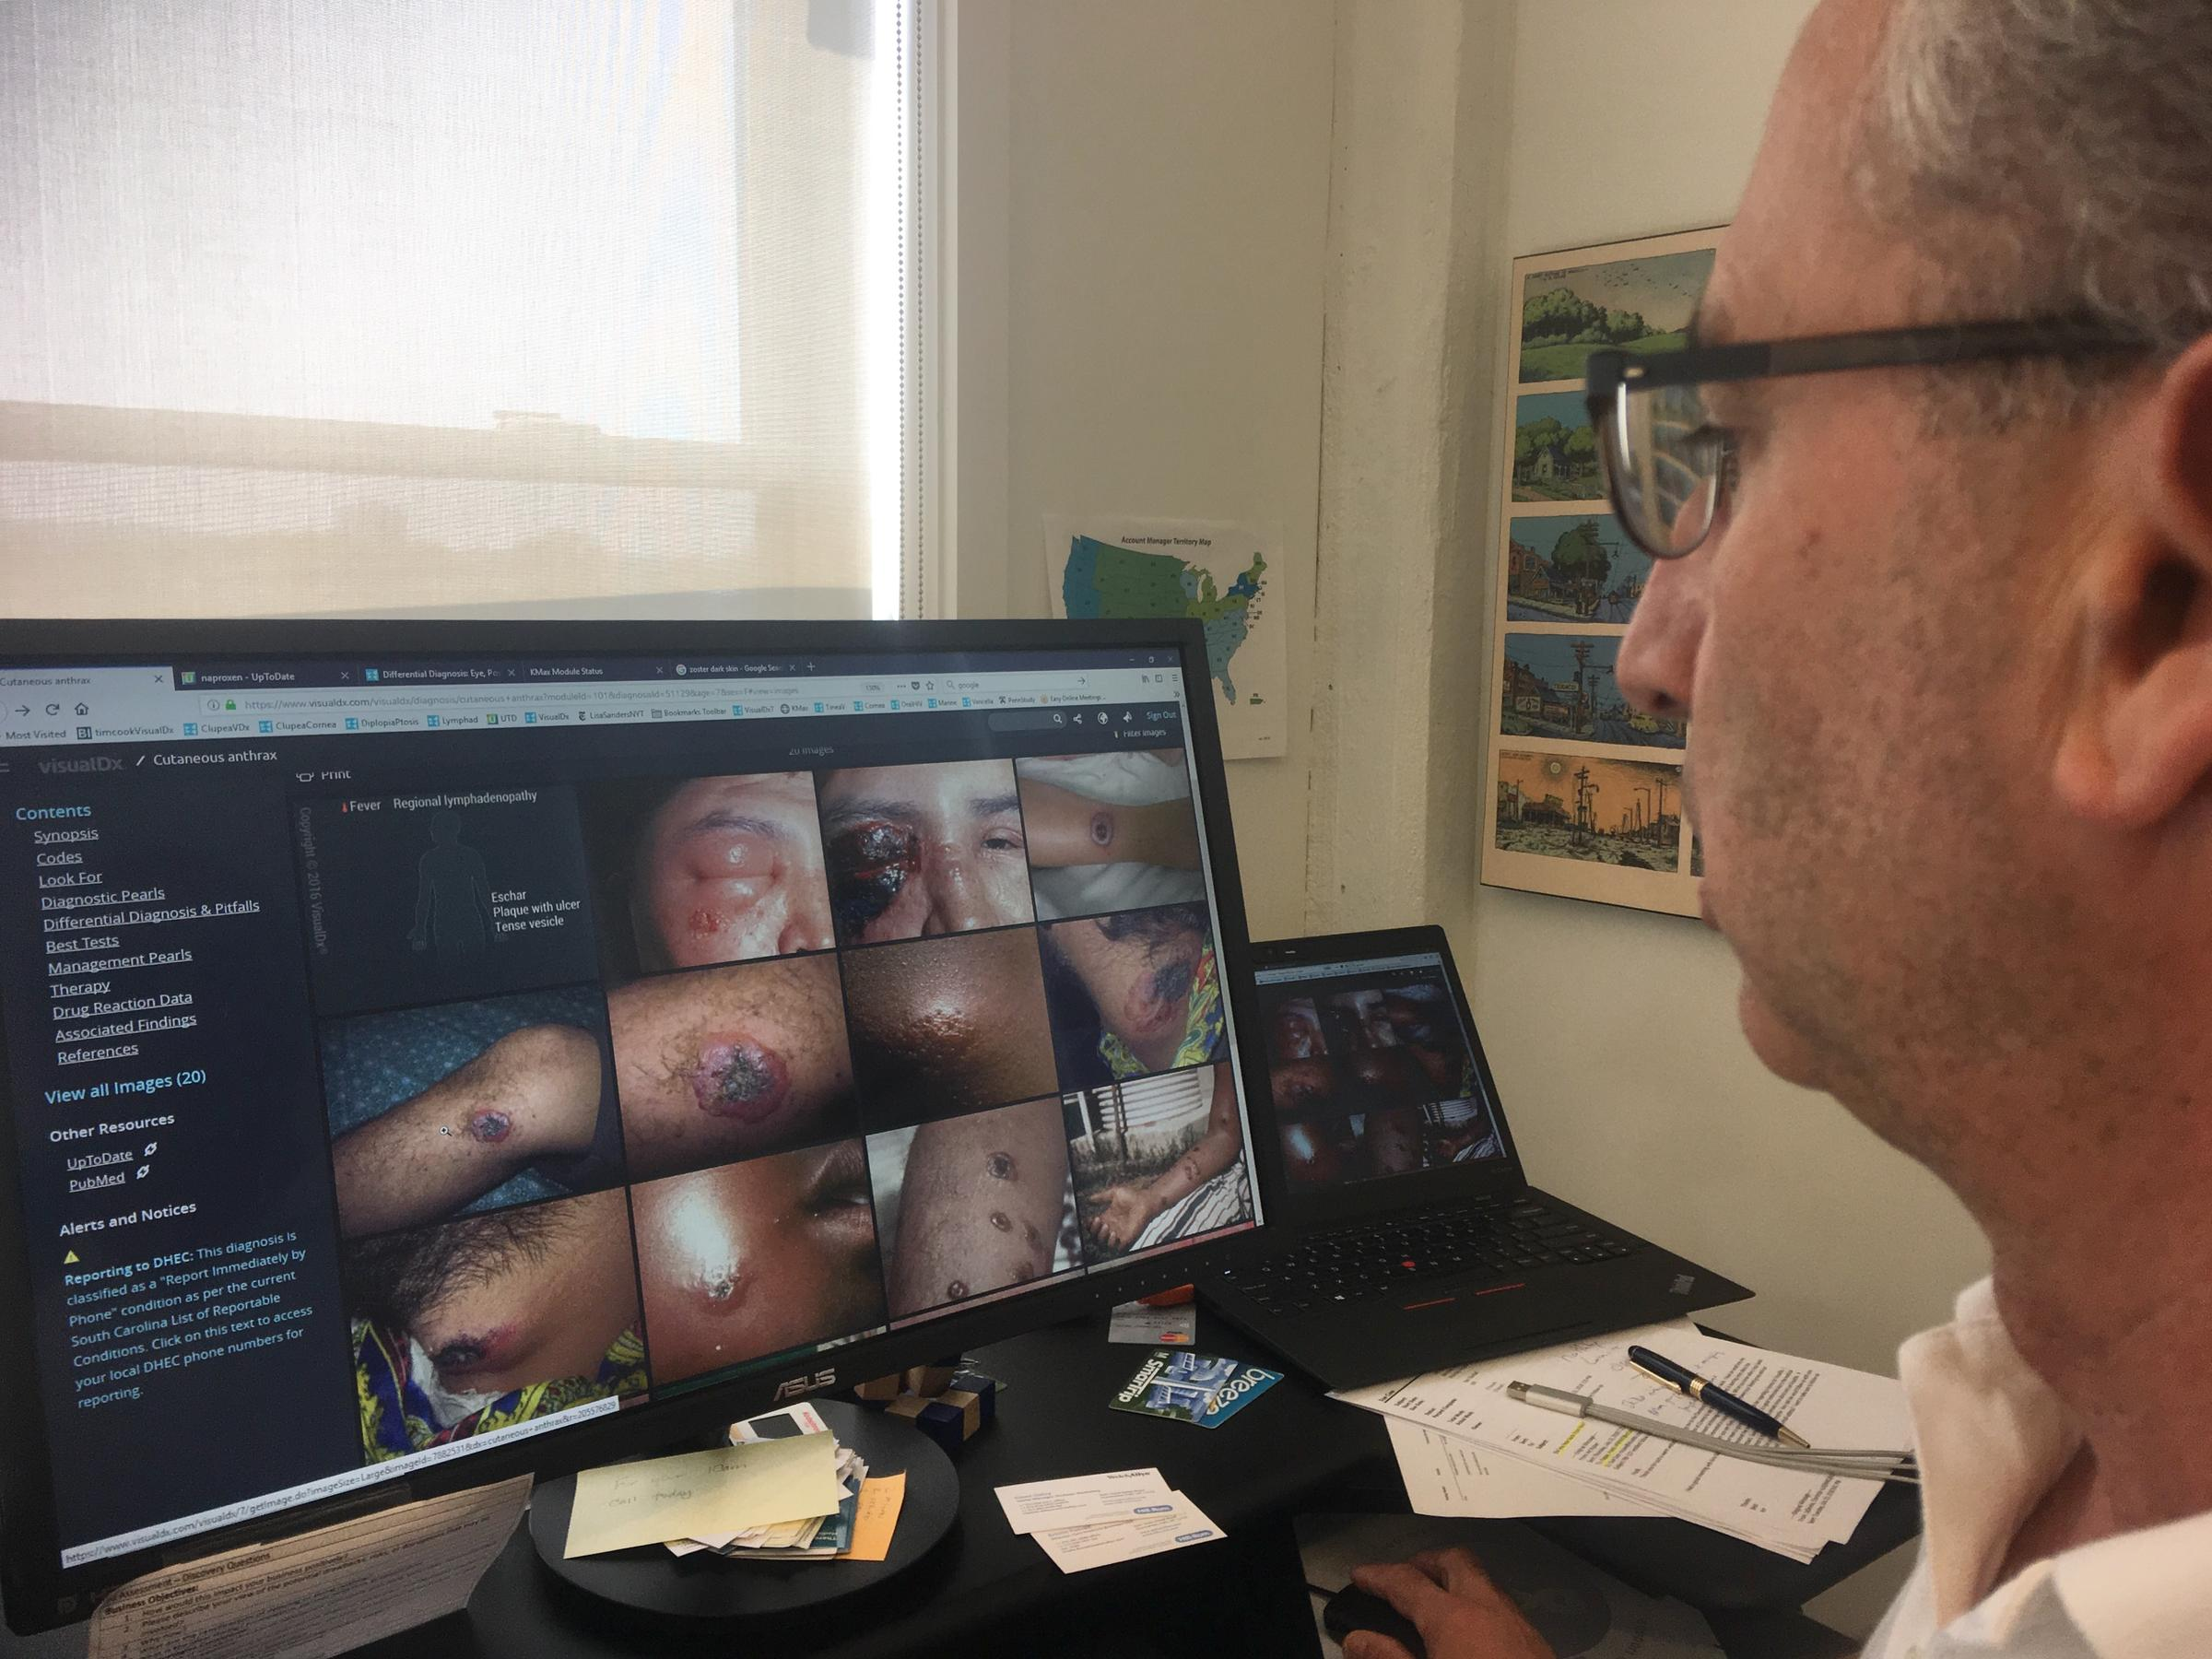 Art Papier Ceo Of Visualdx Demonstrates How The Software Returns Image Results Matching Description Skin Disease From Database